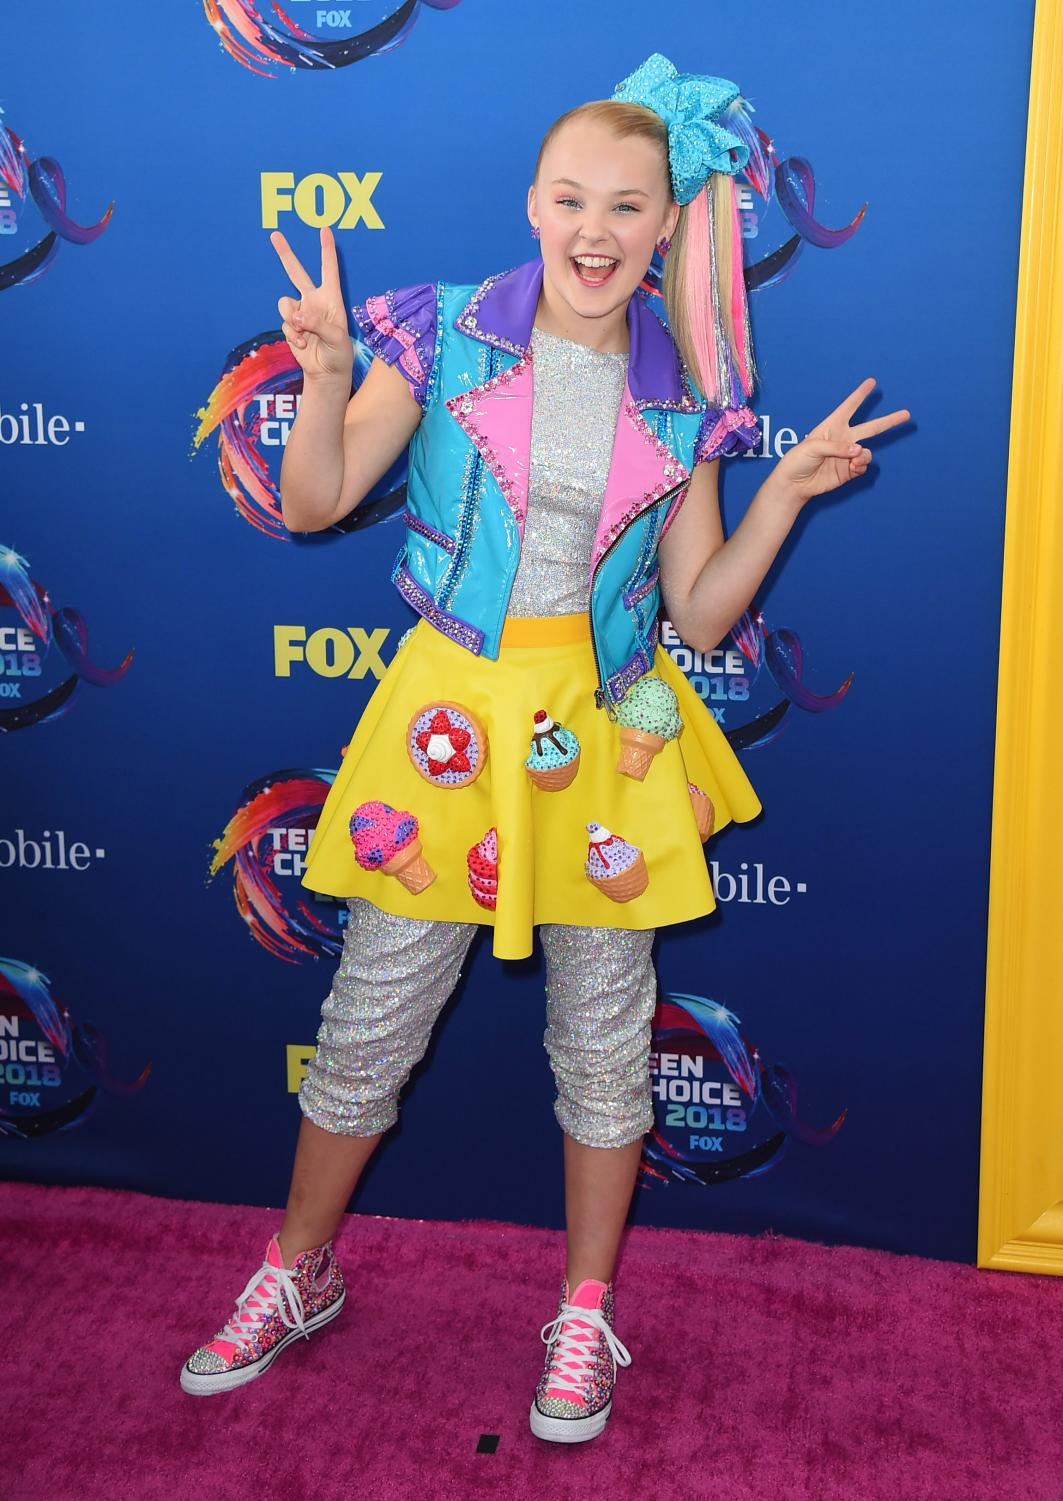 Jojo Siwa coming out